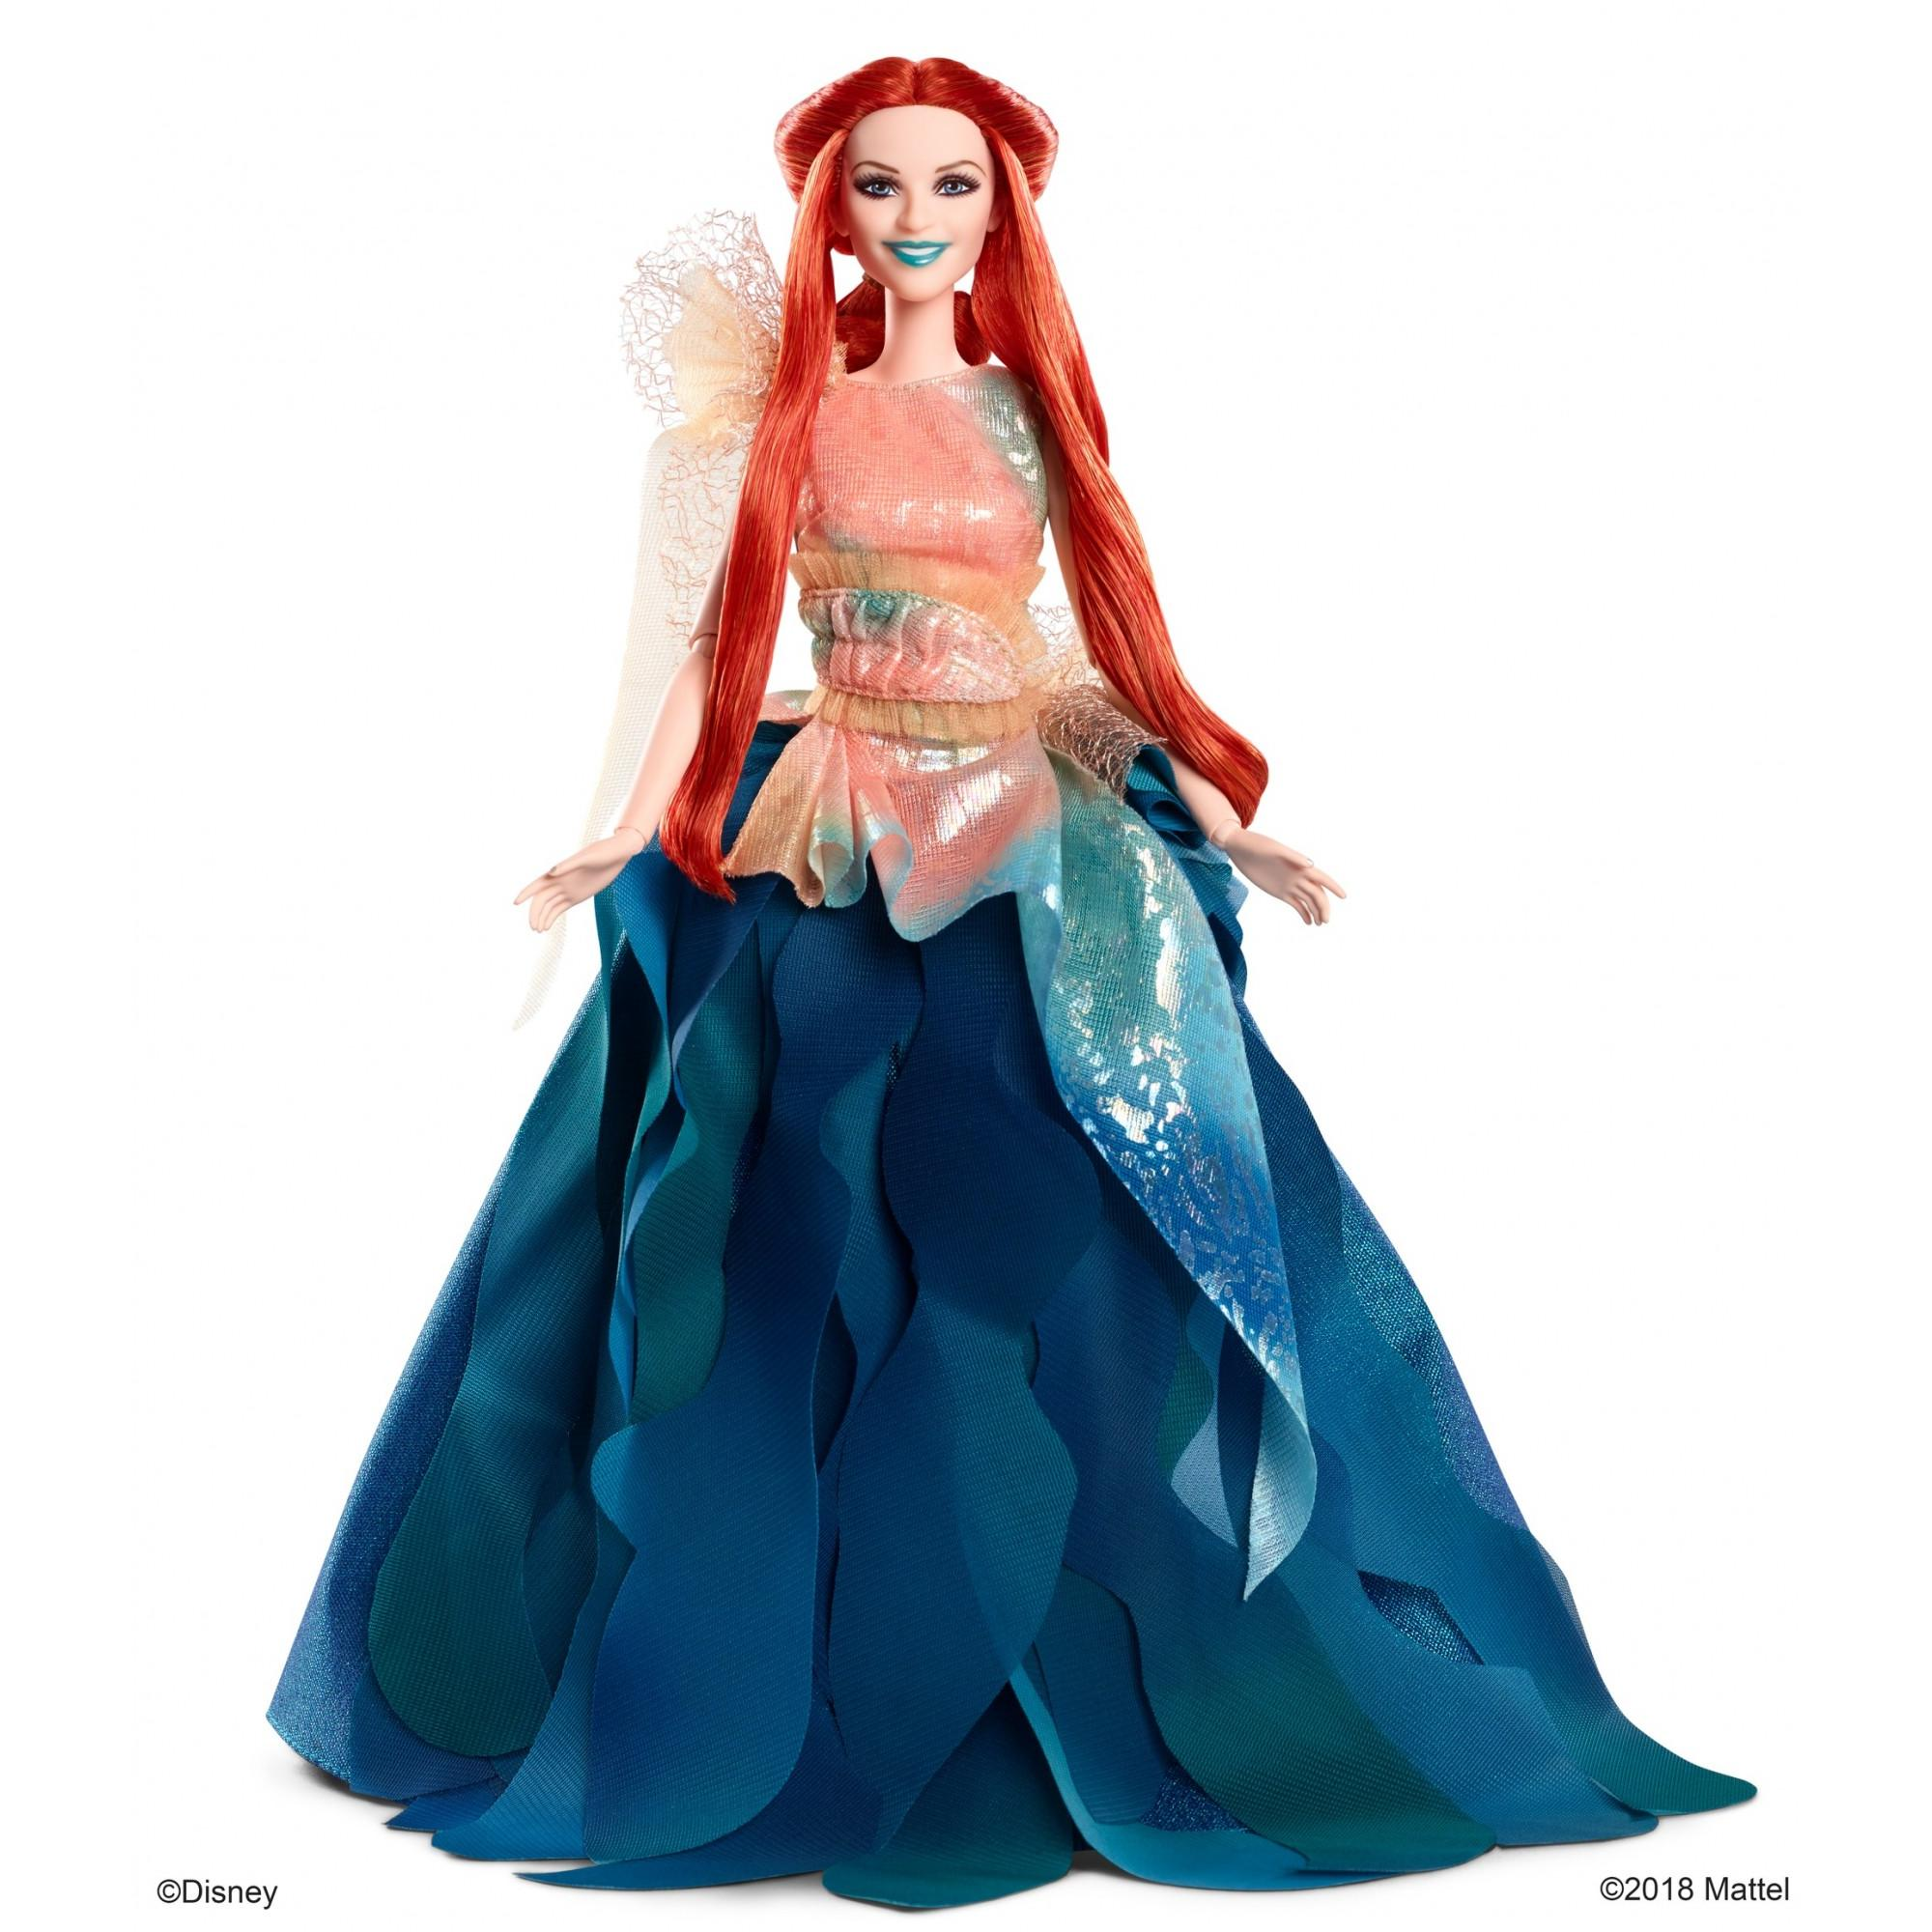 Barbie A Wrinkle in Time Mrs. Whatsit Doll (Reese Witherspoon)